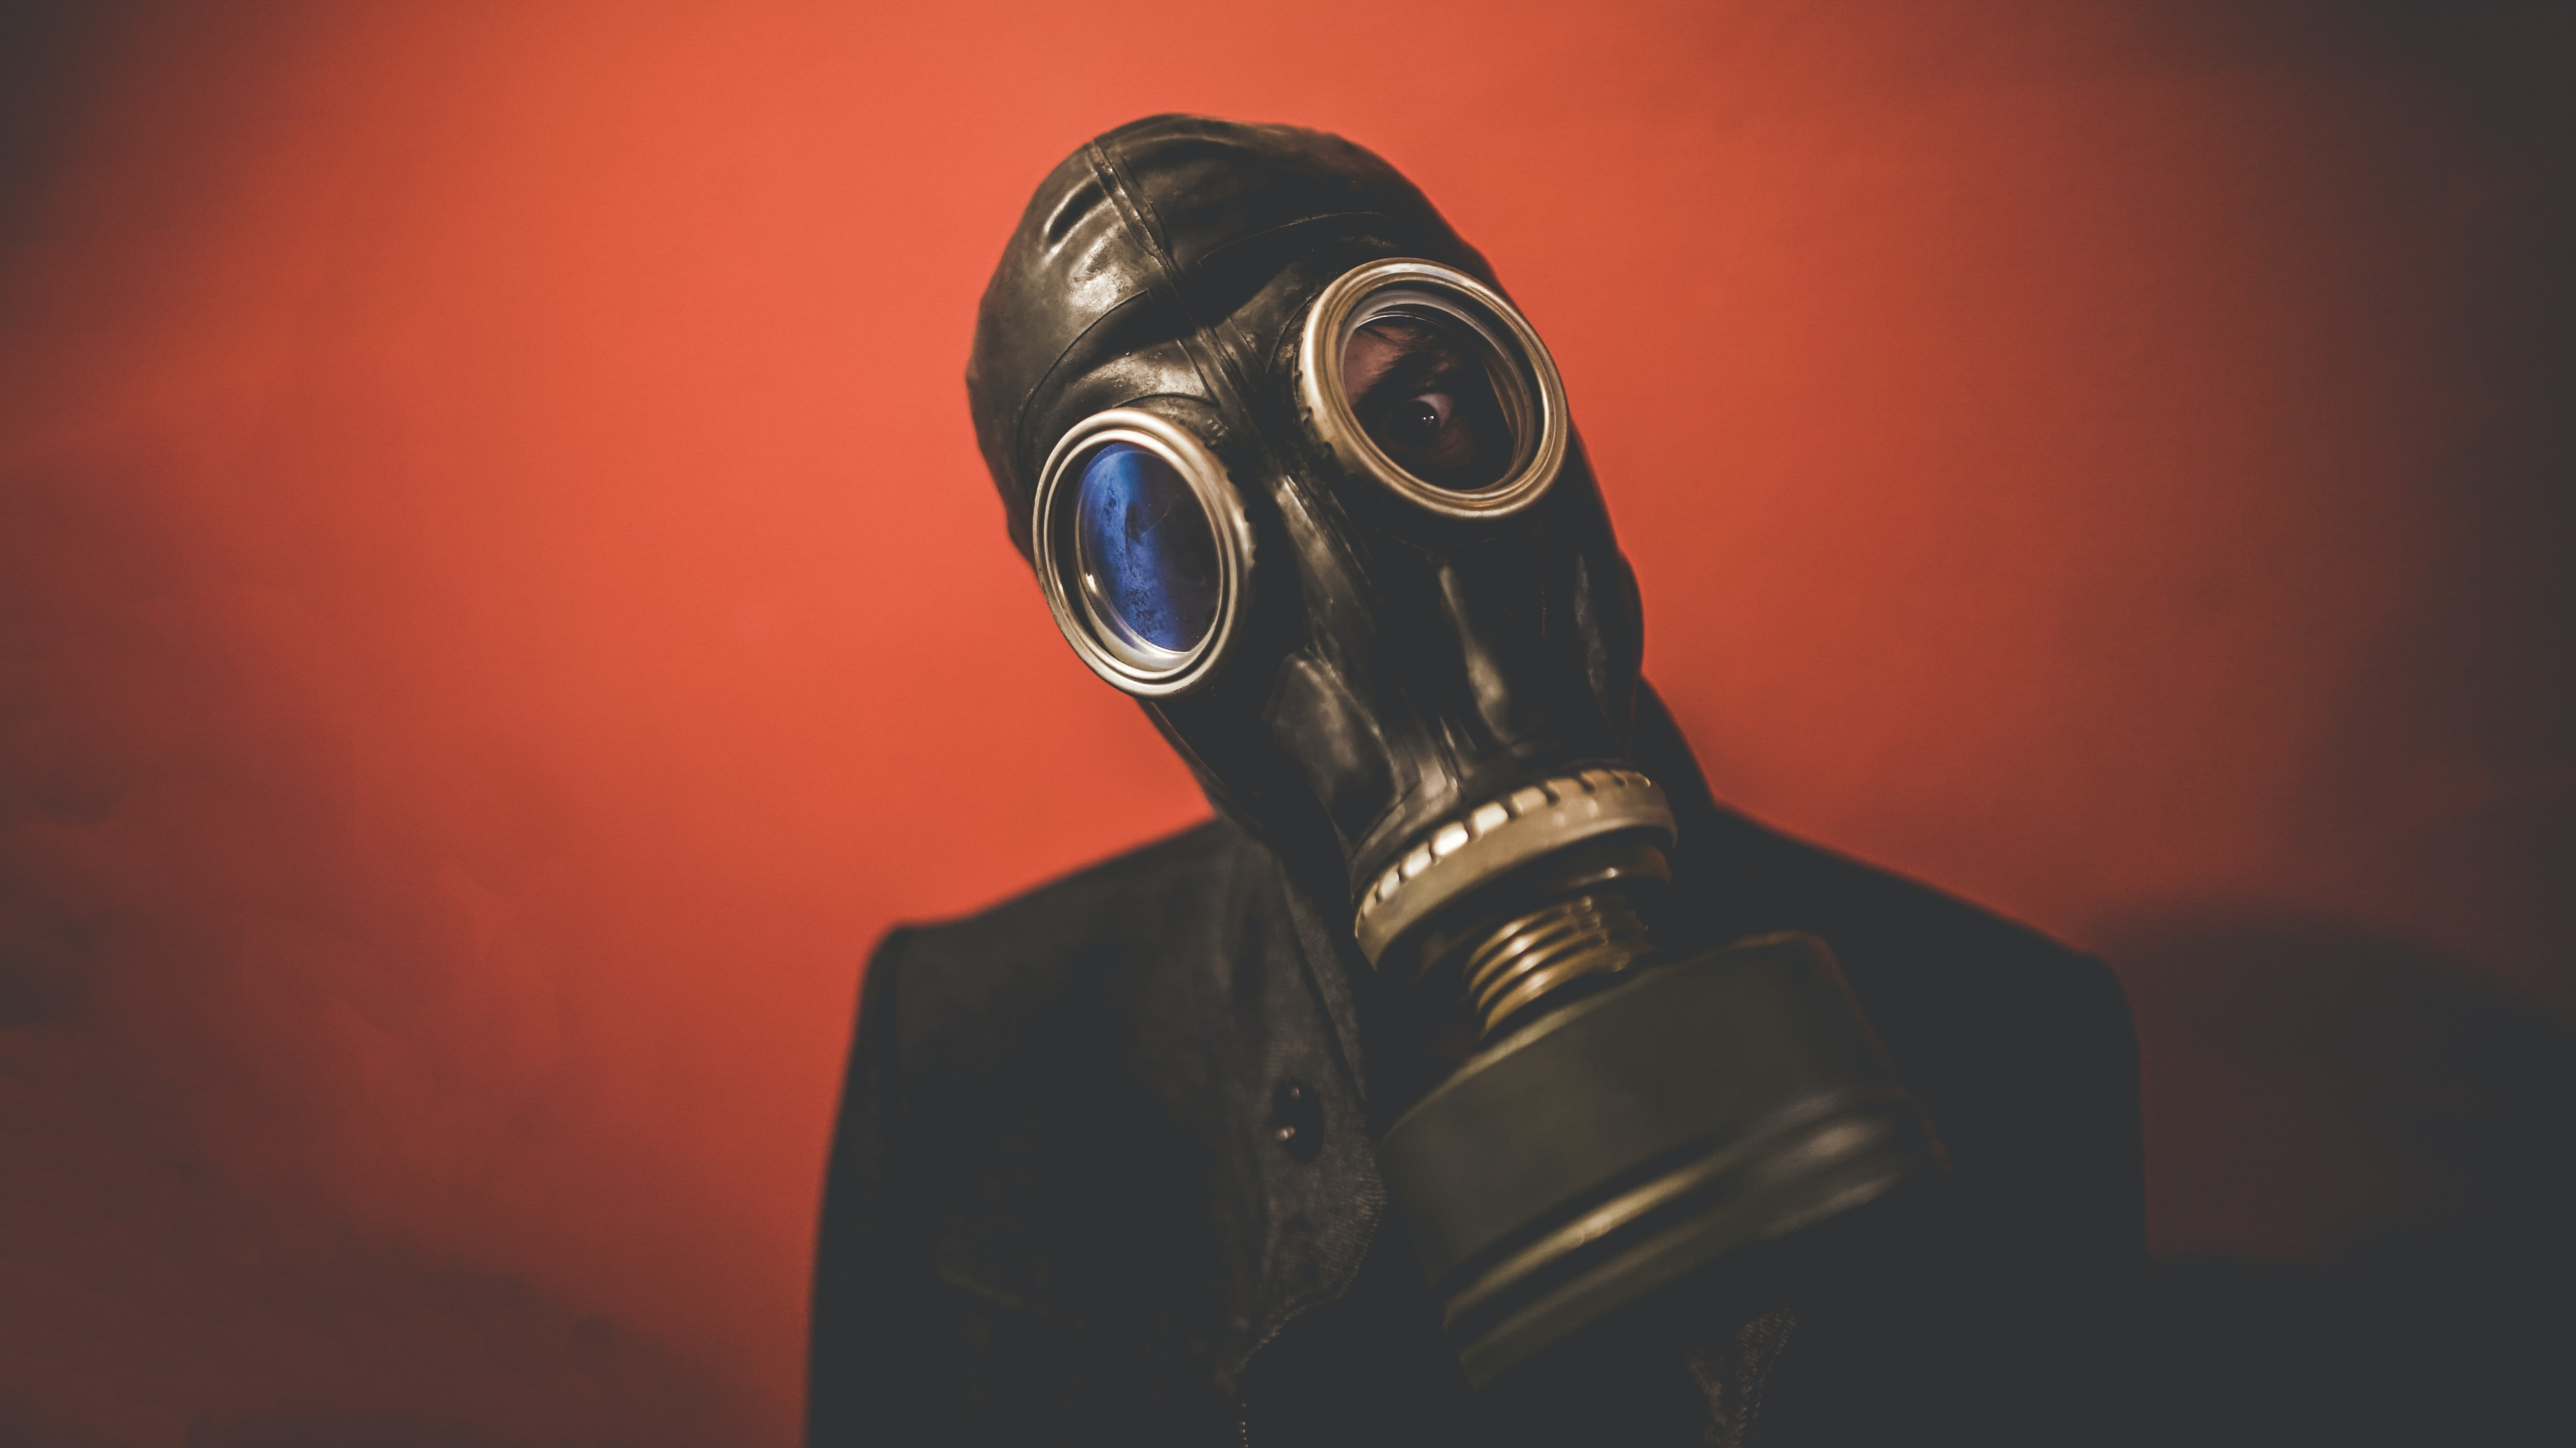 A person wearing a gas mask helmet.